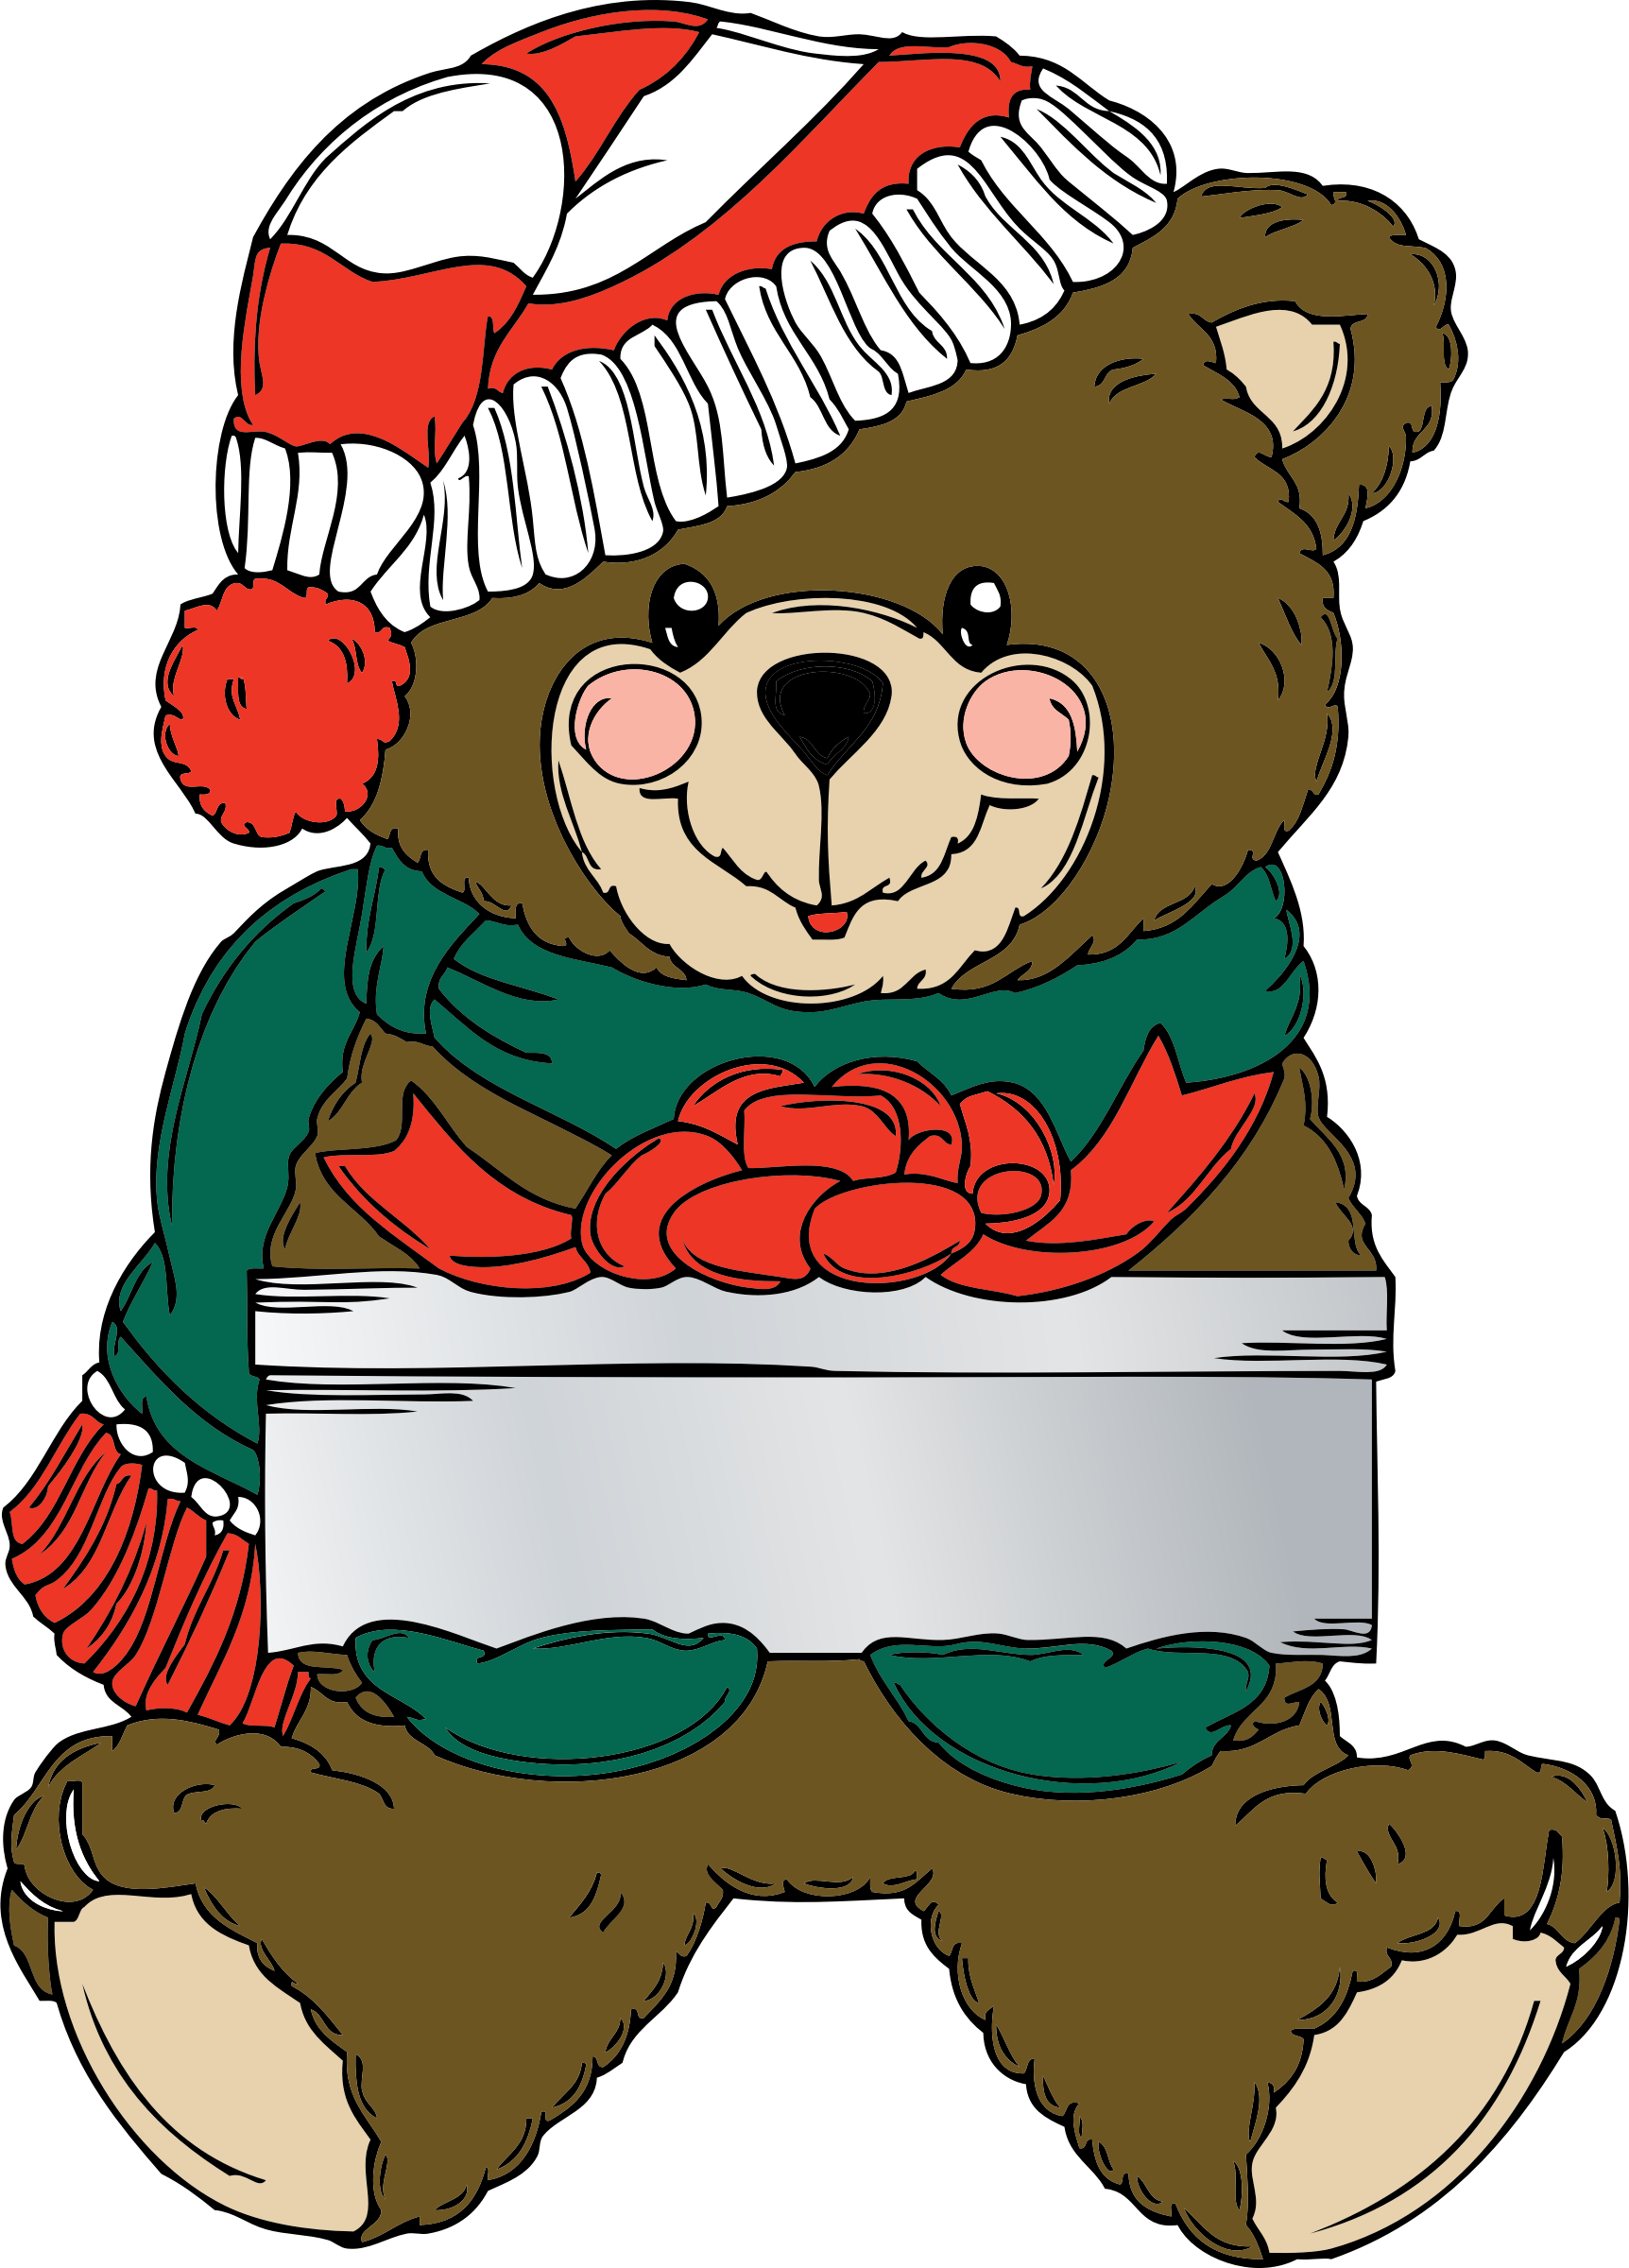 png library download Wih present big image. Christmas bear clipart